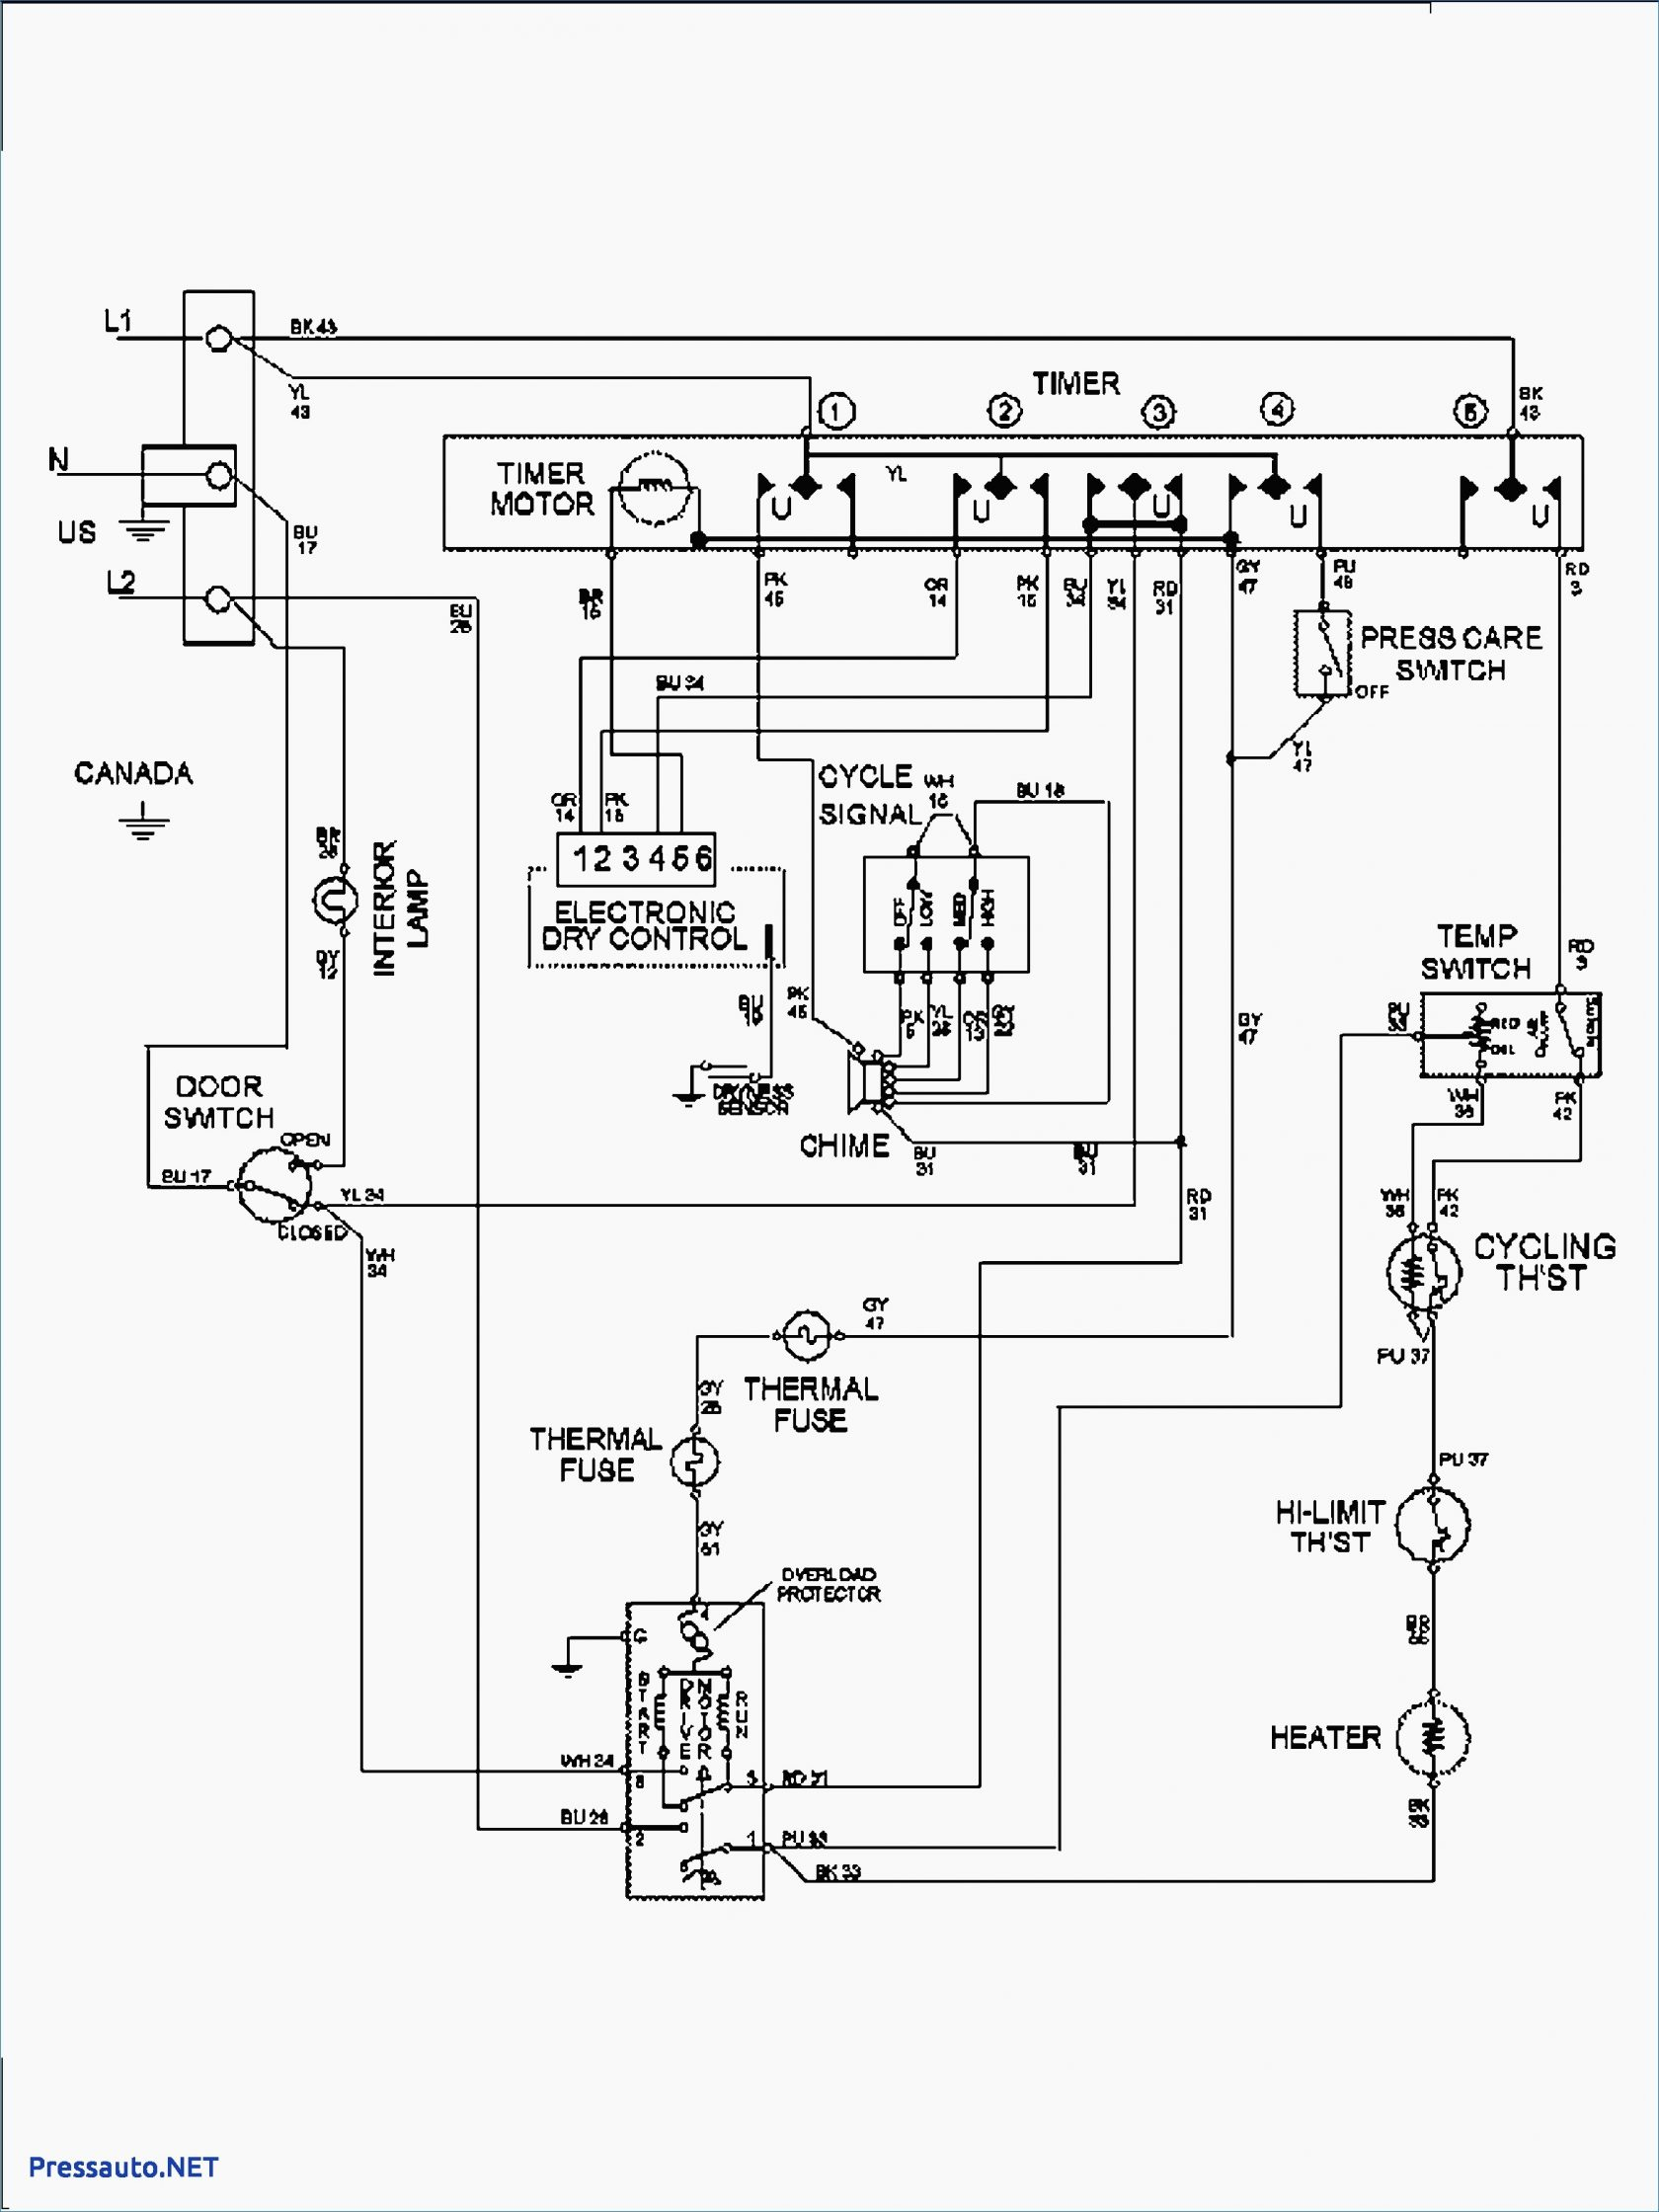 Diagram Likewise Heat Pump Wiring Diagram Schematic On Wiring Diagram